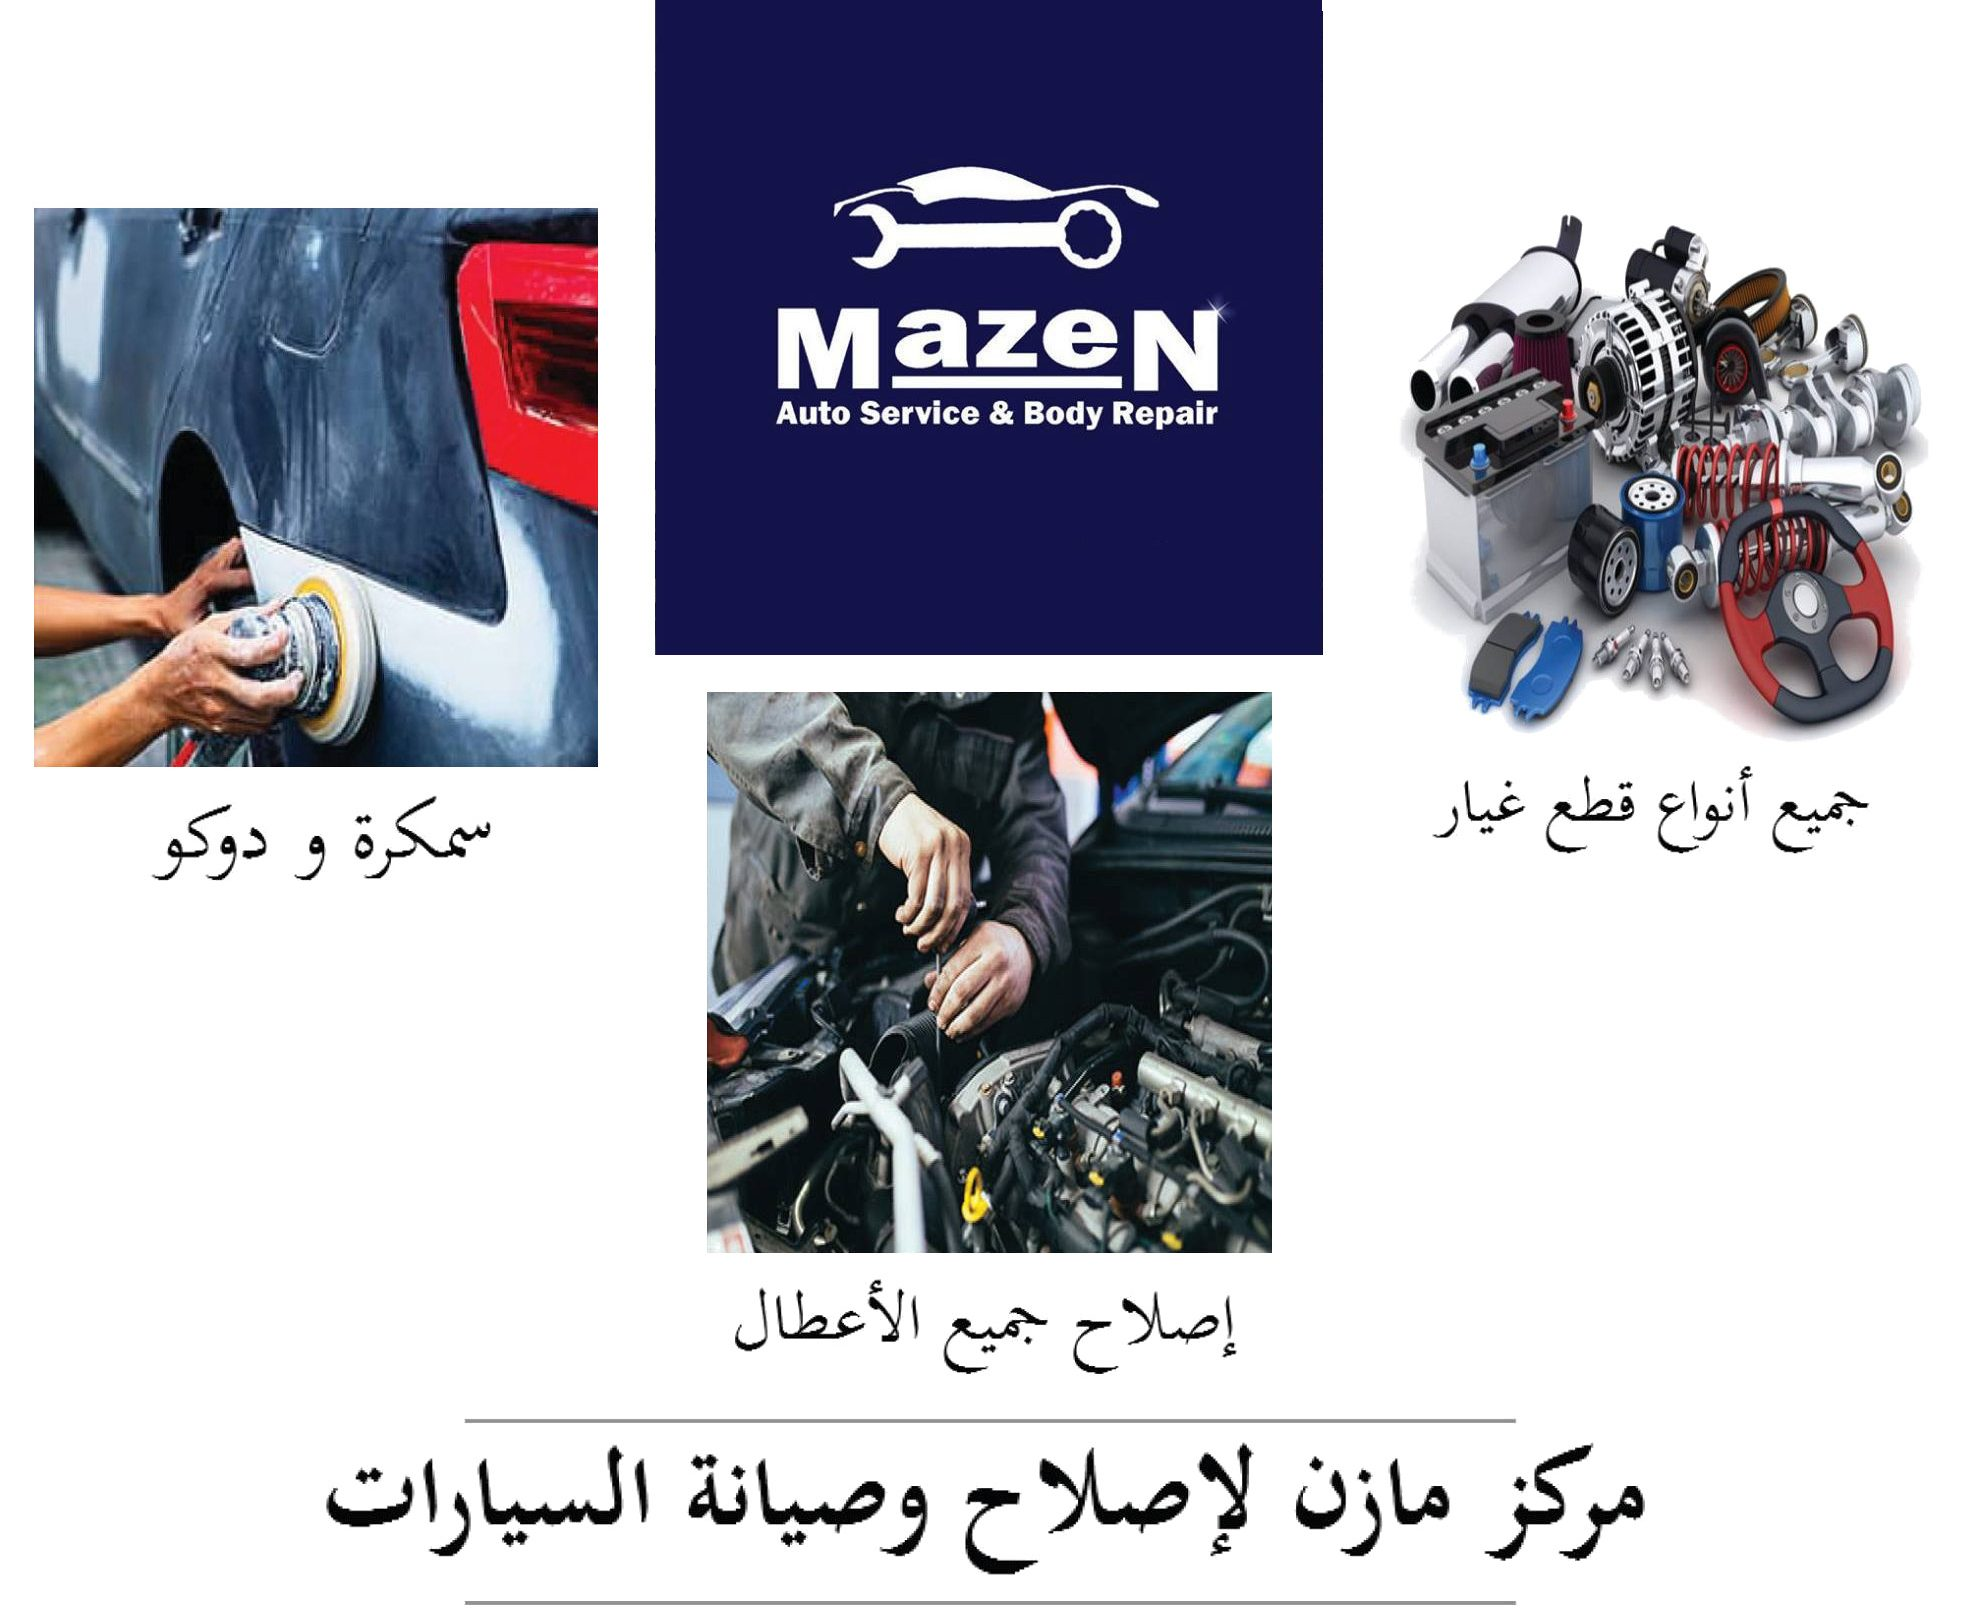 Mazen Auto Service & Body Repair